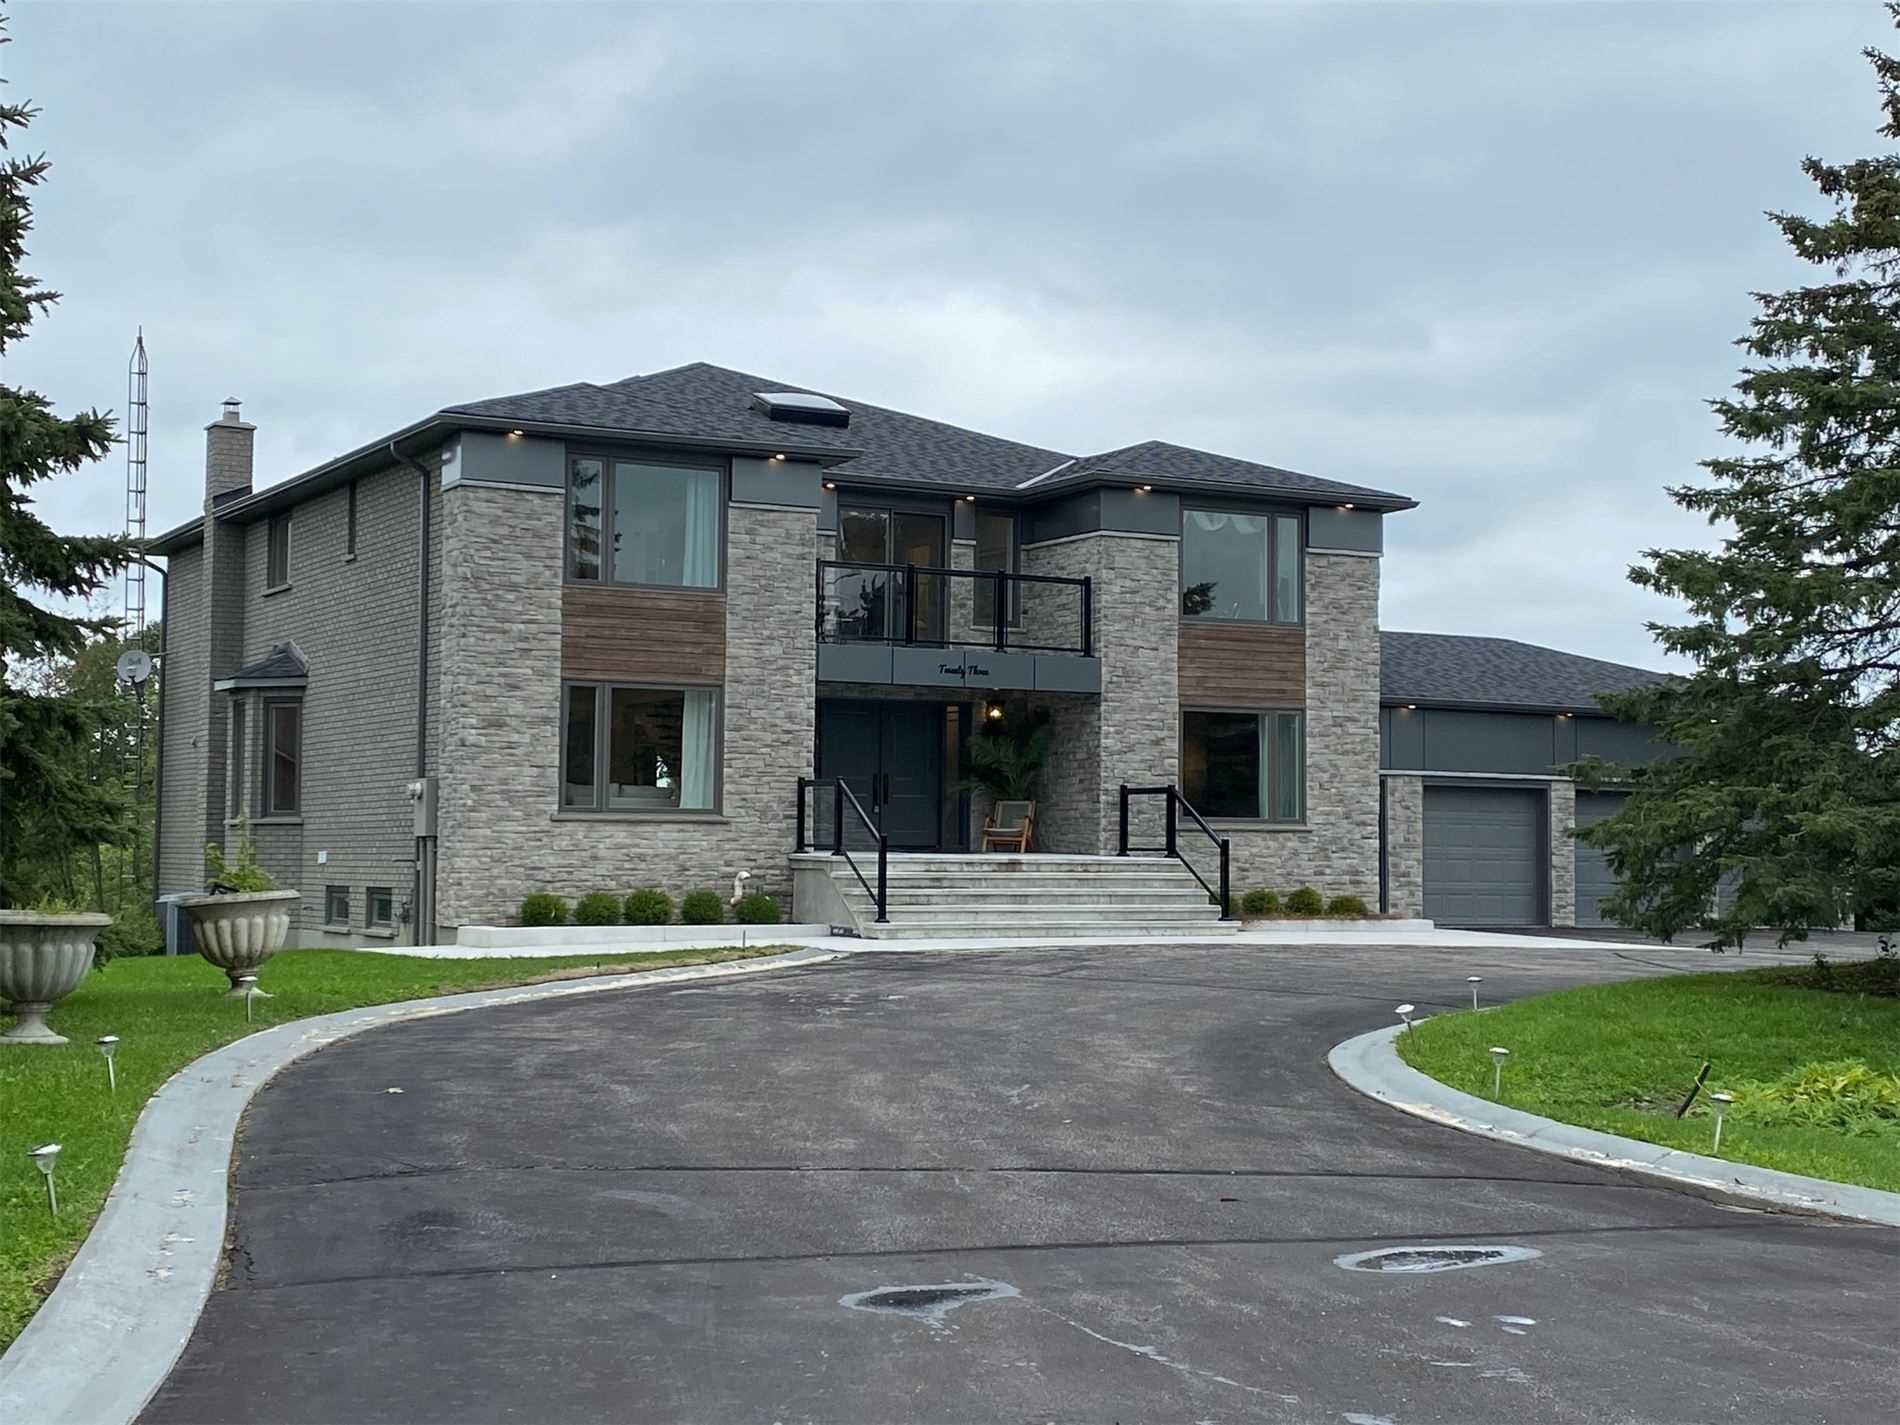 Stunning Modern Prof Renovated 4 Bedroom Executive Dream Home, Located On Approx An Acre, Backing Onto Golf Course.  Featuring: Over $800K In Recent Designer Magazine Quality Renos Incl:  A Beautiful Upscale Chef's Kitchen, Ss Gas Stove, Ss Fridge, Ss Dishwasher, Ss Microwave, Brkfst Bar, Marble Counter Tops, W/O To Deck, O/L Golf Course! Dark Hardwood Floors And Pot Lights Throughout, 3 Fireplaces, Spacious Bedrooms, W/O Bsmt W Sep Ent  & Sauna, 3 Car Garage